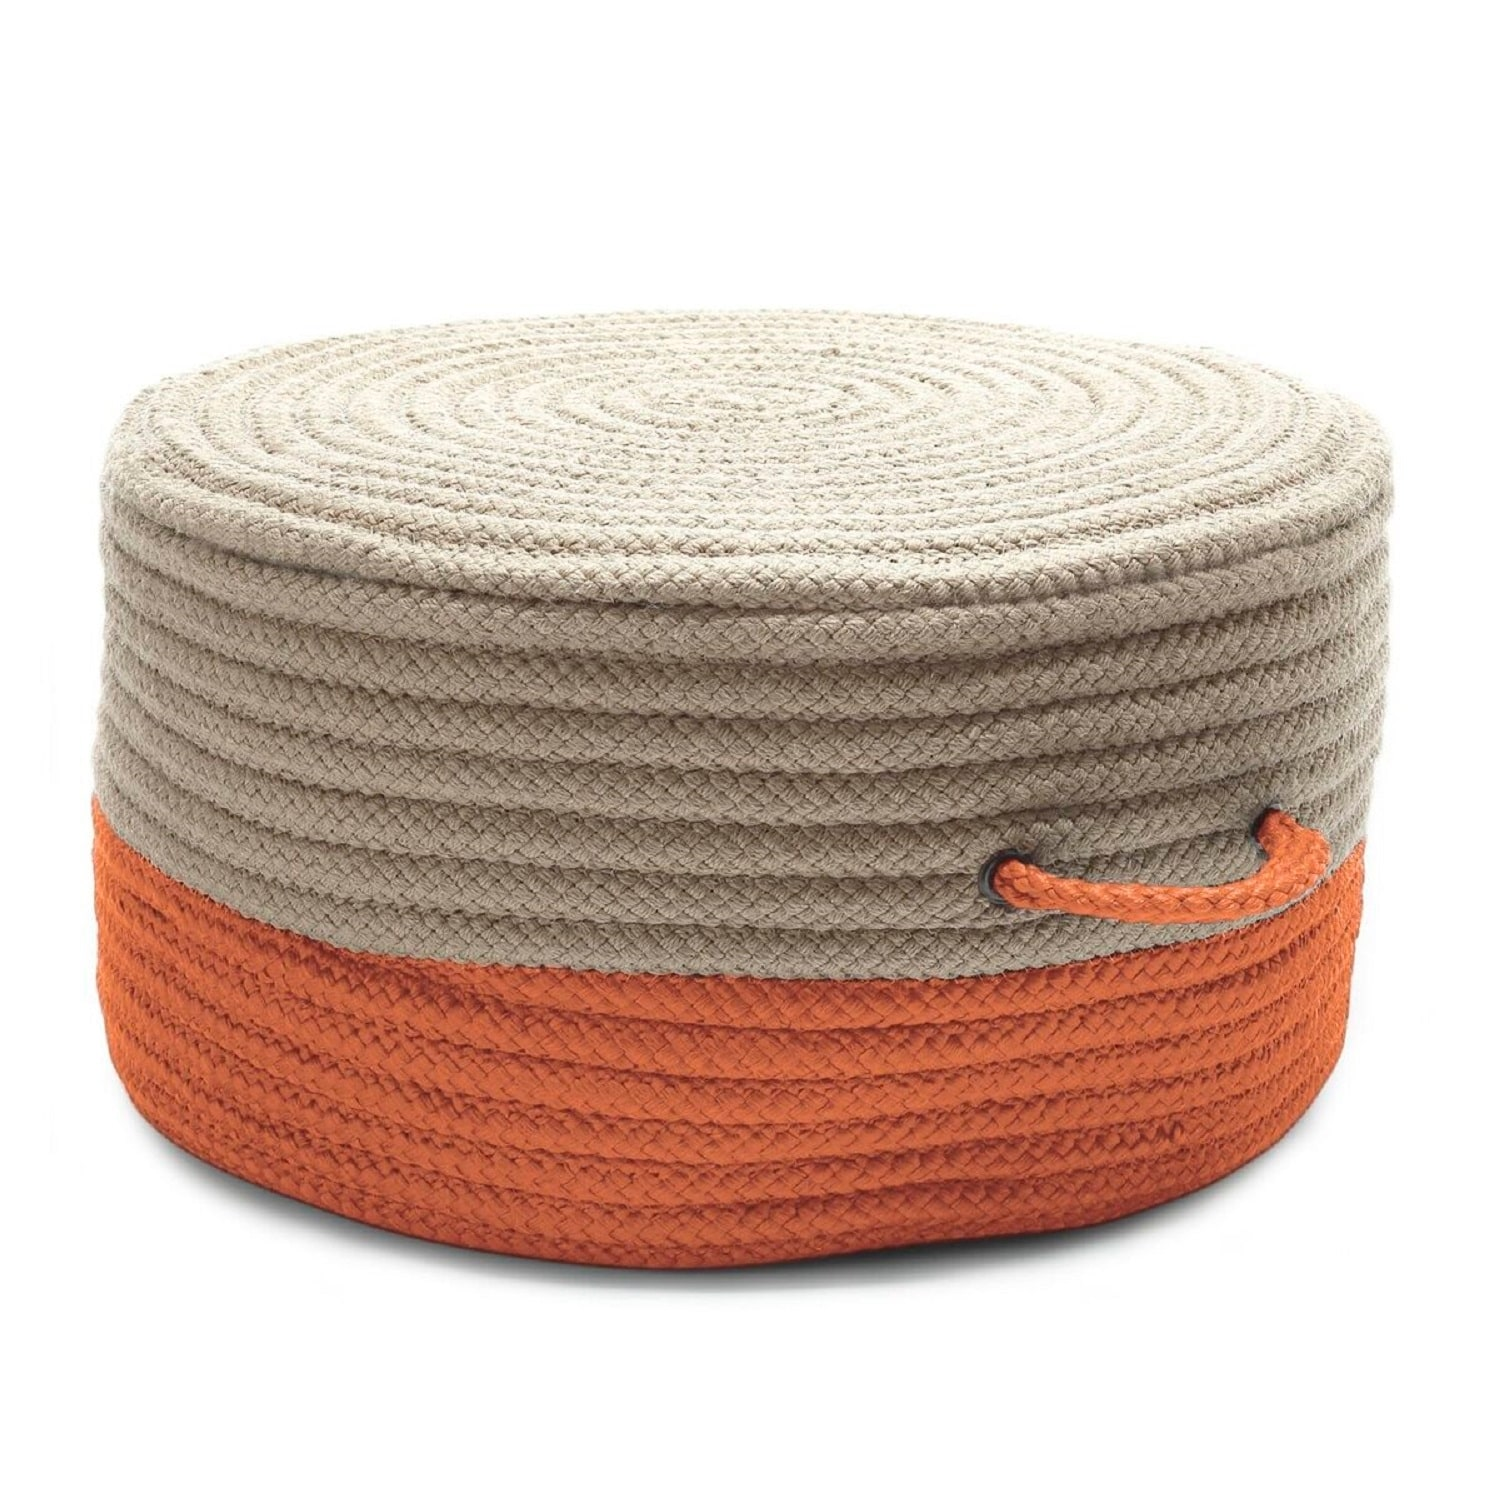 20 Beige And Orange Handmade Round Pouf Ottoman Overstock 31715852